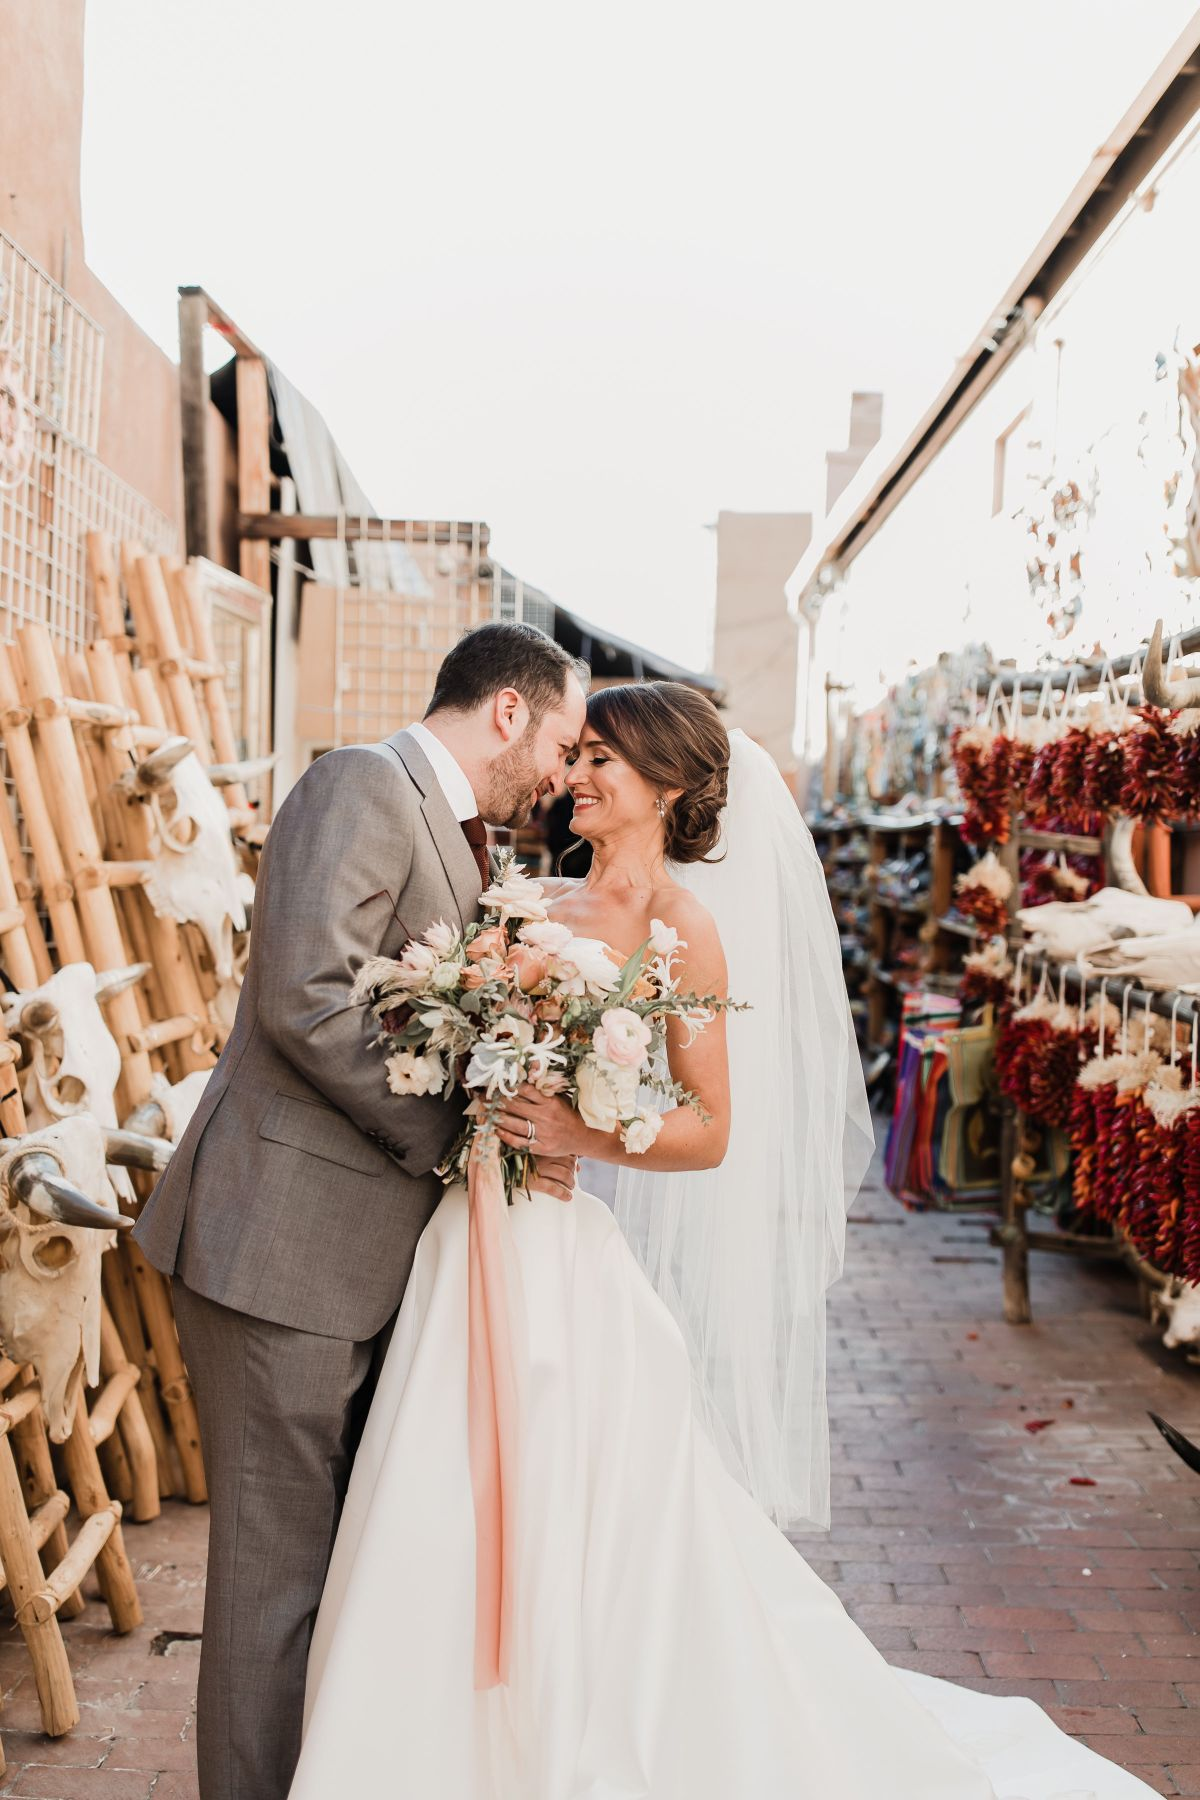 Southwestern Dreams: A Real Wedding with Alicia LuciaPhotography